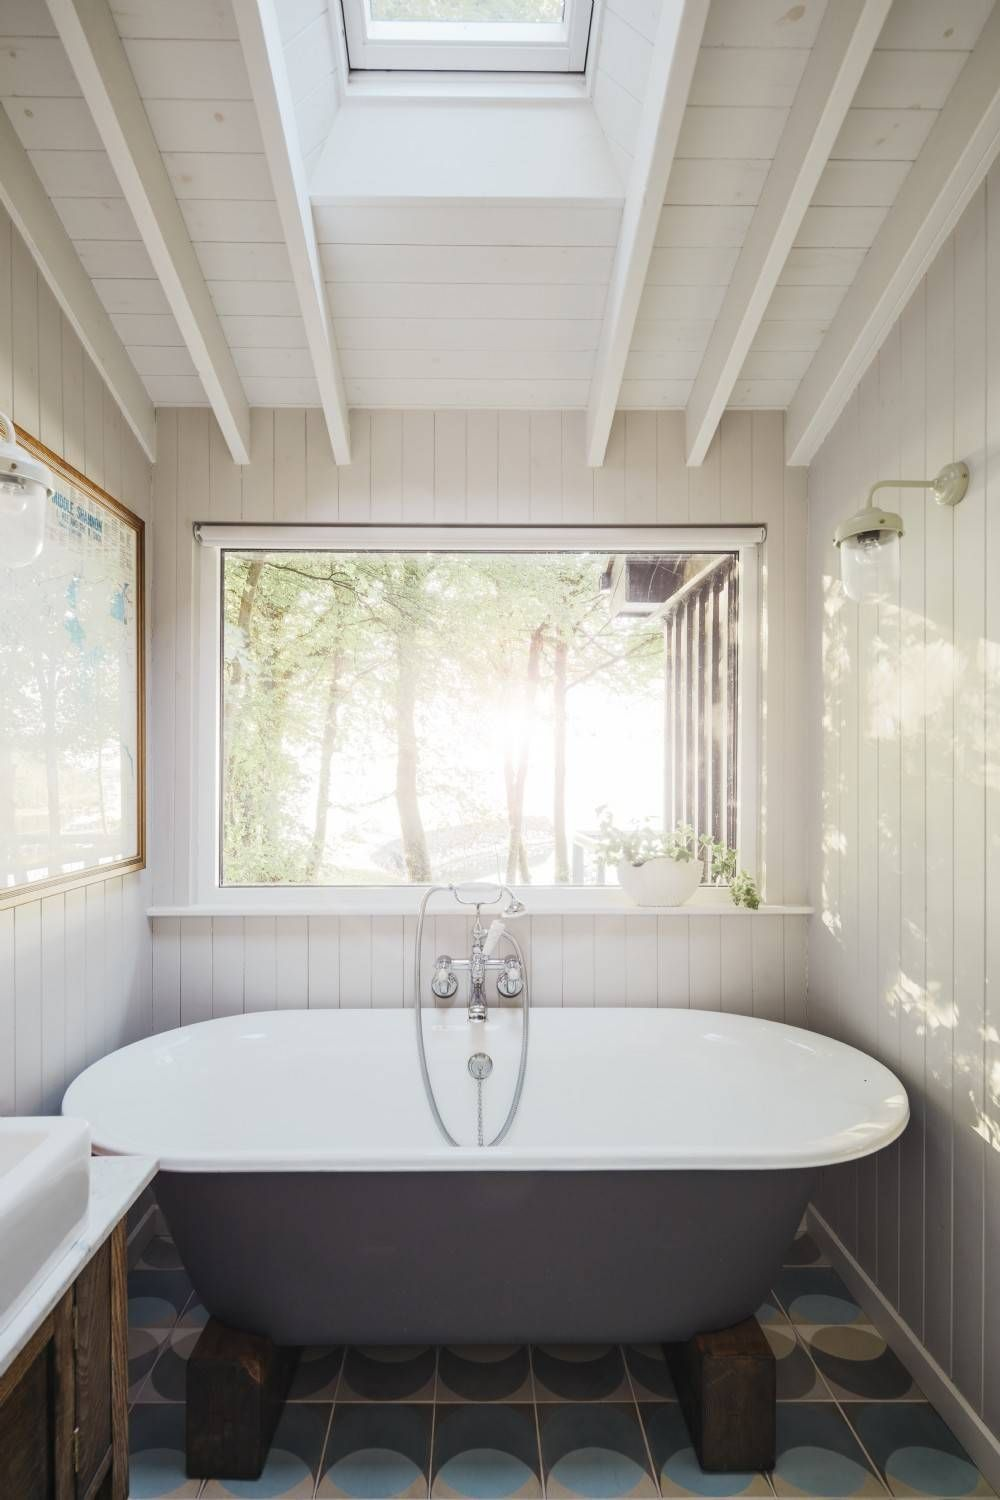 Skylight brings ample natural light into the small bathroom with tiled floor